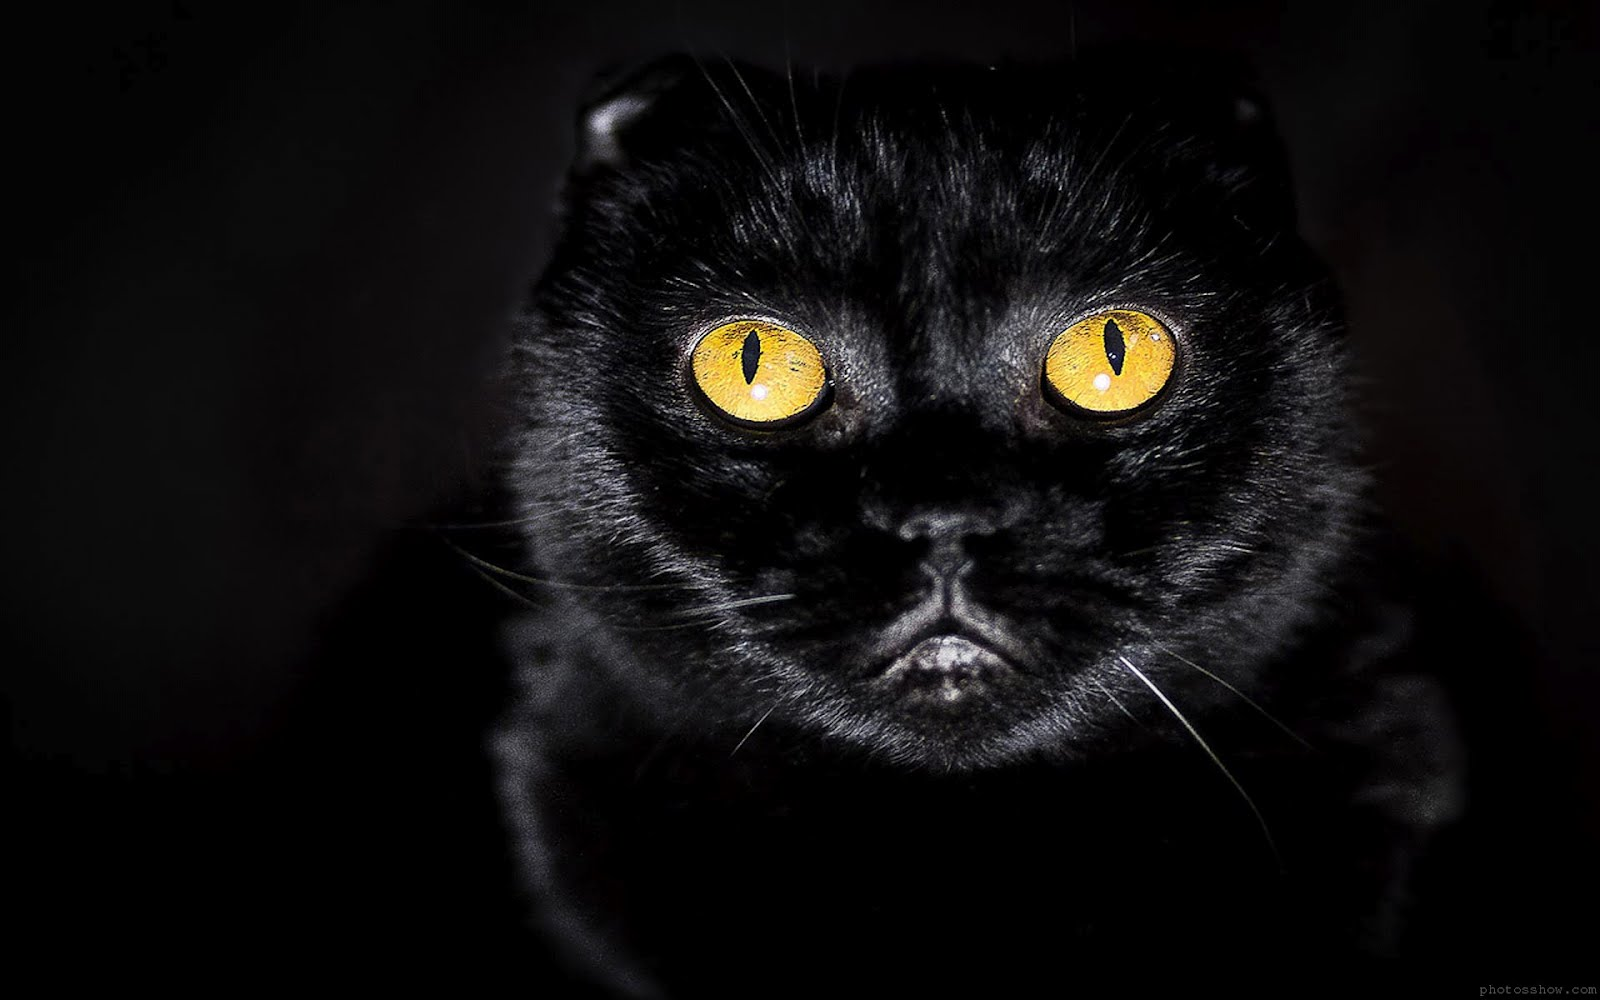 Free Download Black Cat Eyes Wallpapers Blue Cat Eyes Yellow Cat Eyes Green Red 1600x1000 For Your Desktop Mobile Tablet Explore 43 Black Cat Eyes Wallpaper Cute Black Wallpapers